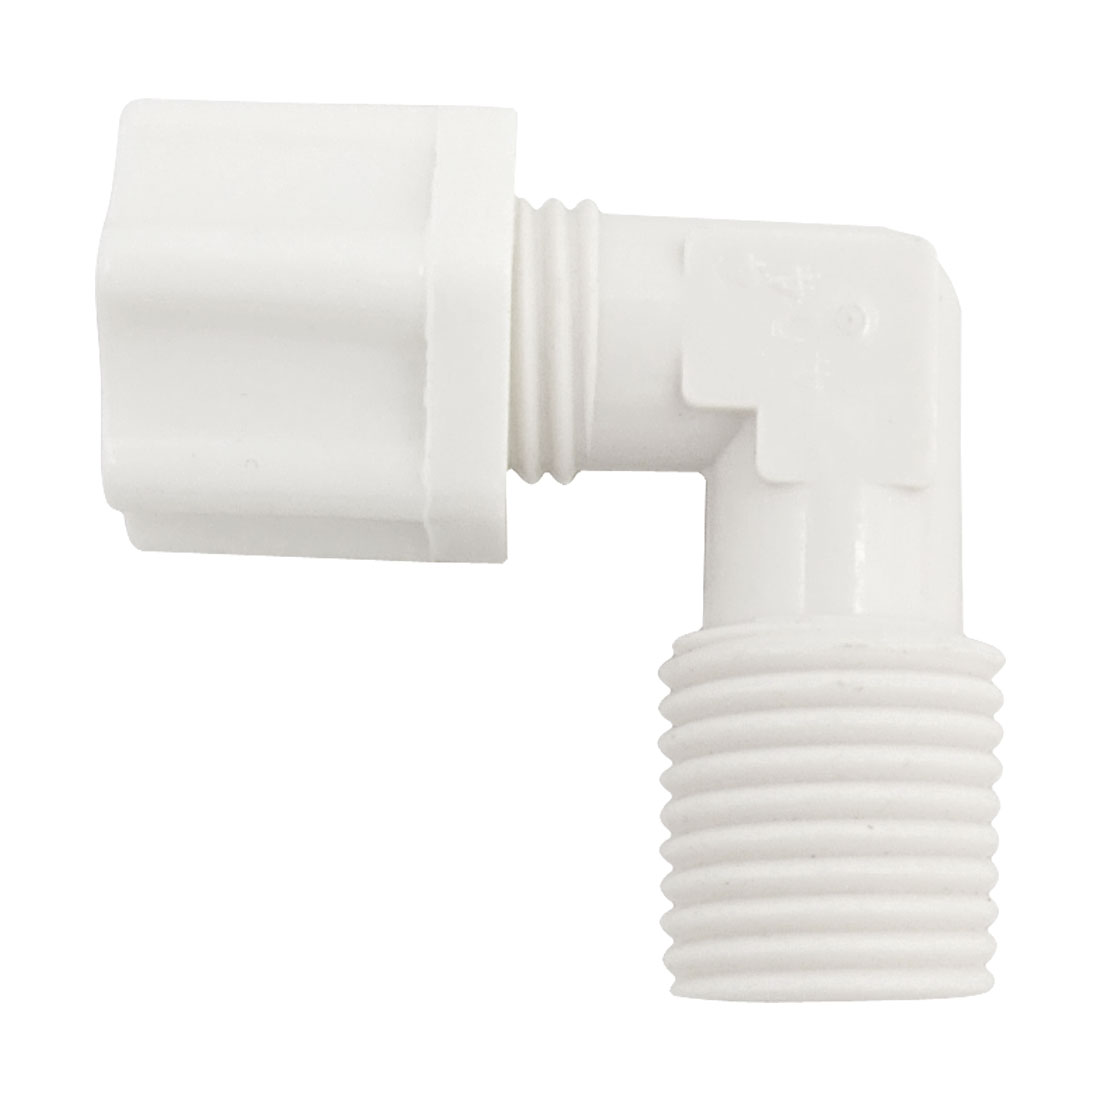 13mm Thread White Plastic Elbow Type Water Filter Pipe Connector